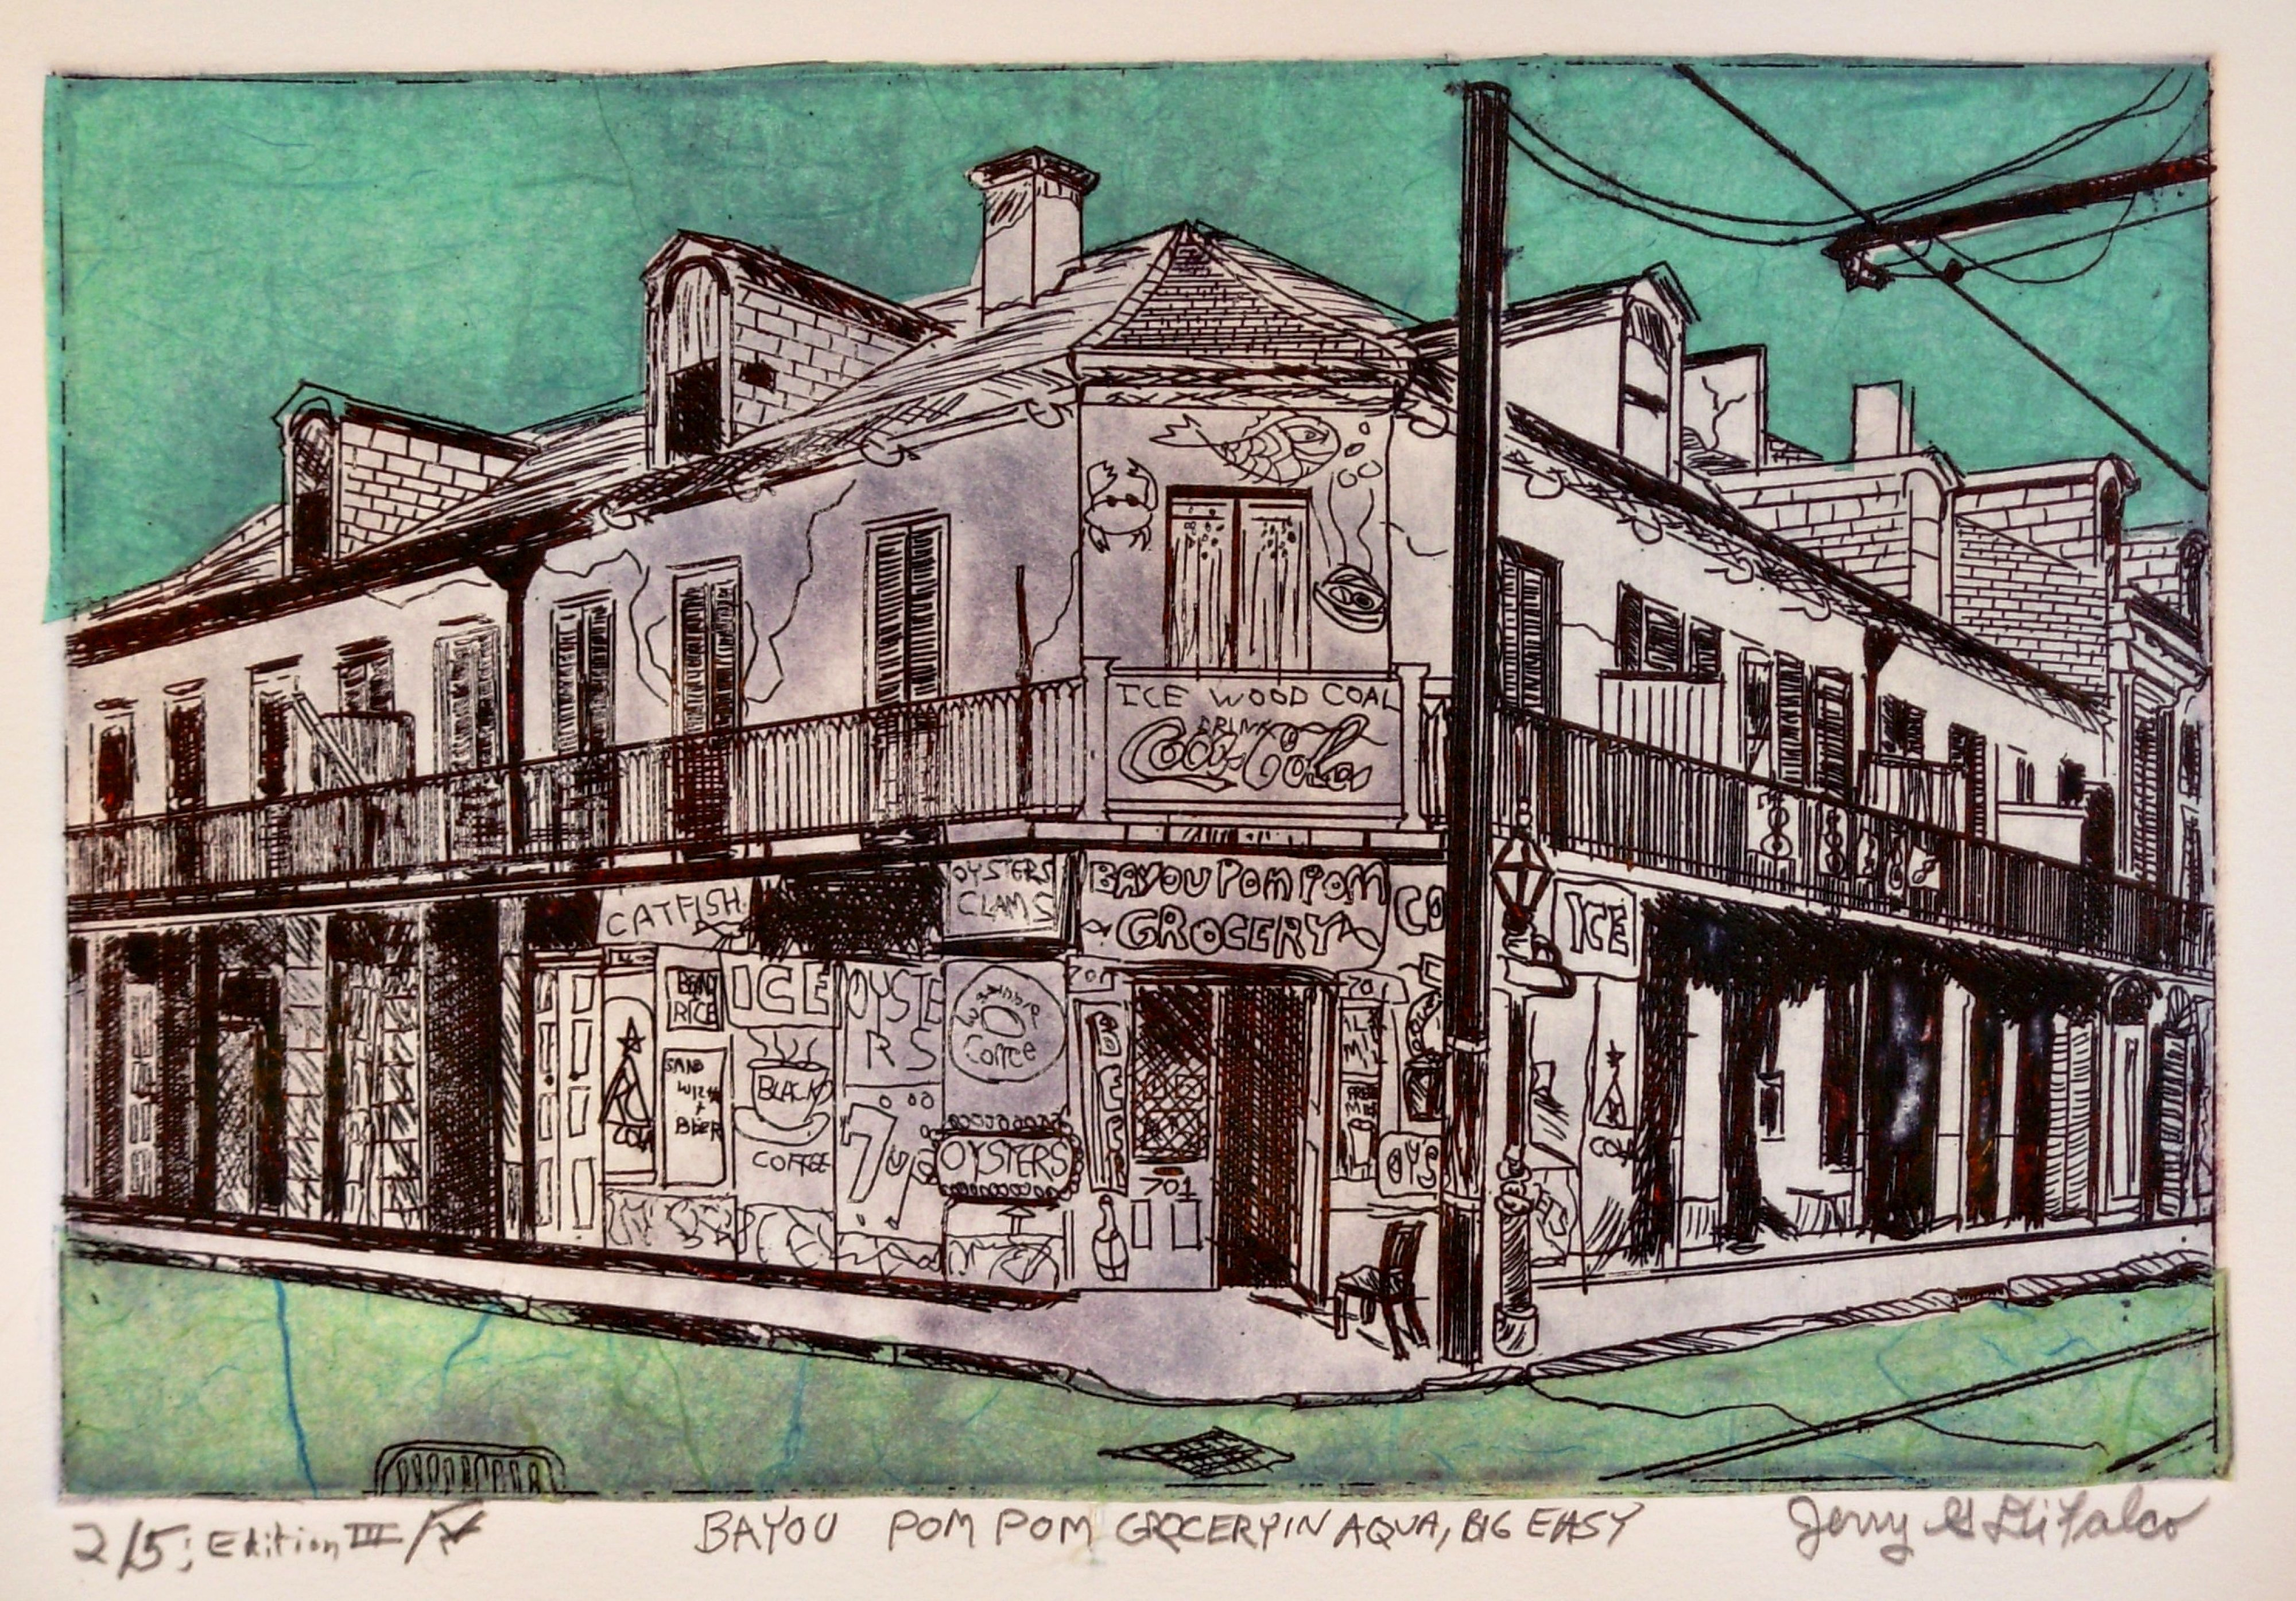 Jerry  Di Falco: 'The Big Easy and Bayou Pom Pom Grocery in Aqua', 2016 Etching, Americana. Please note that this etching is shipped and sold to the buyer without a frame or mat. This keeps the price reasonable and also allows the collector a wide range of choice in framing selection. For shipment, a sturdy cardboard box is employed. The etching is first wrapped in two ...